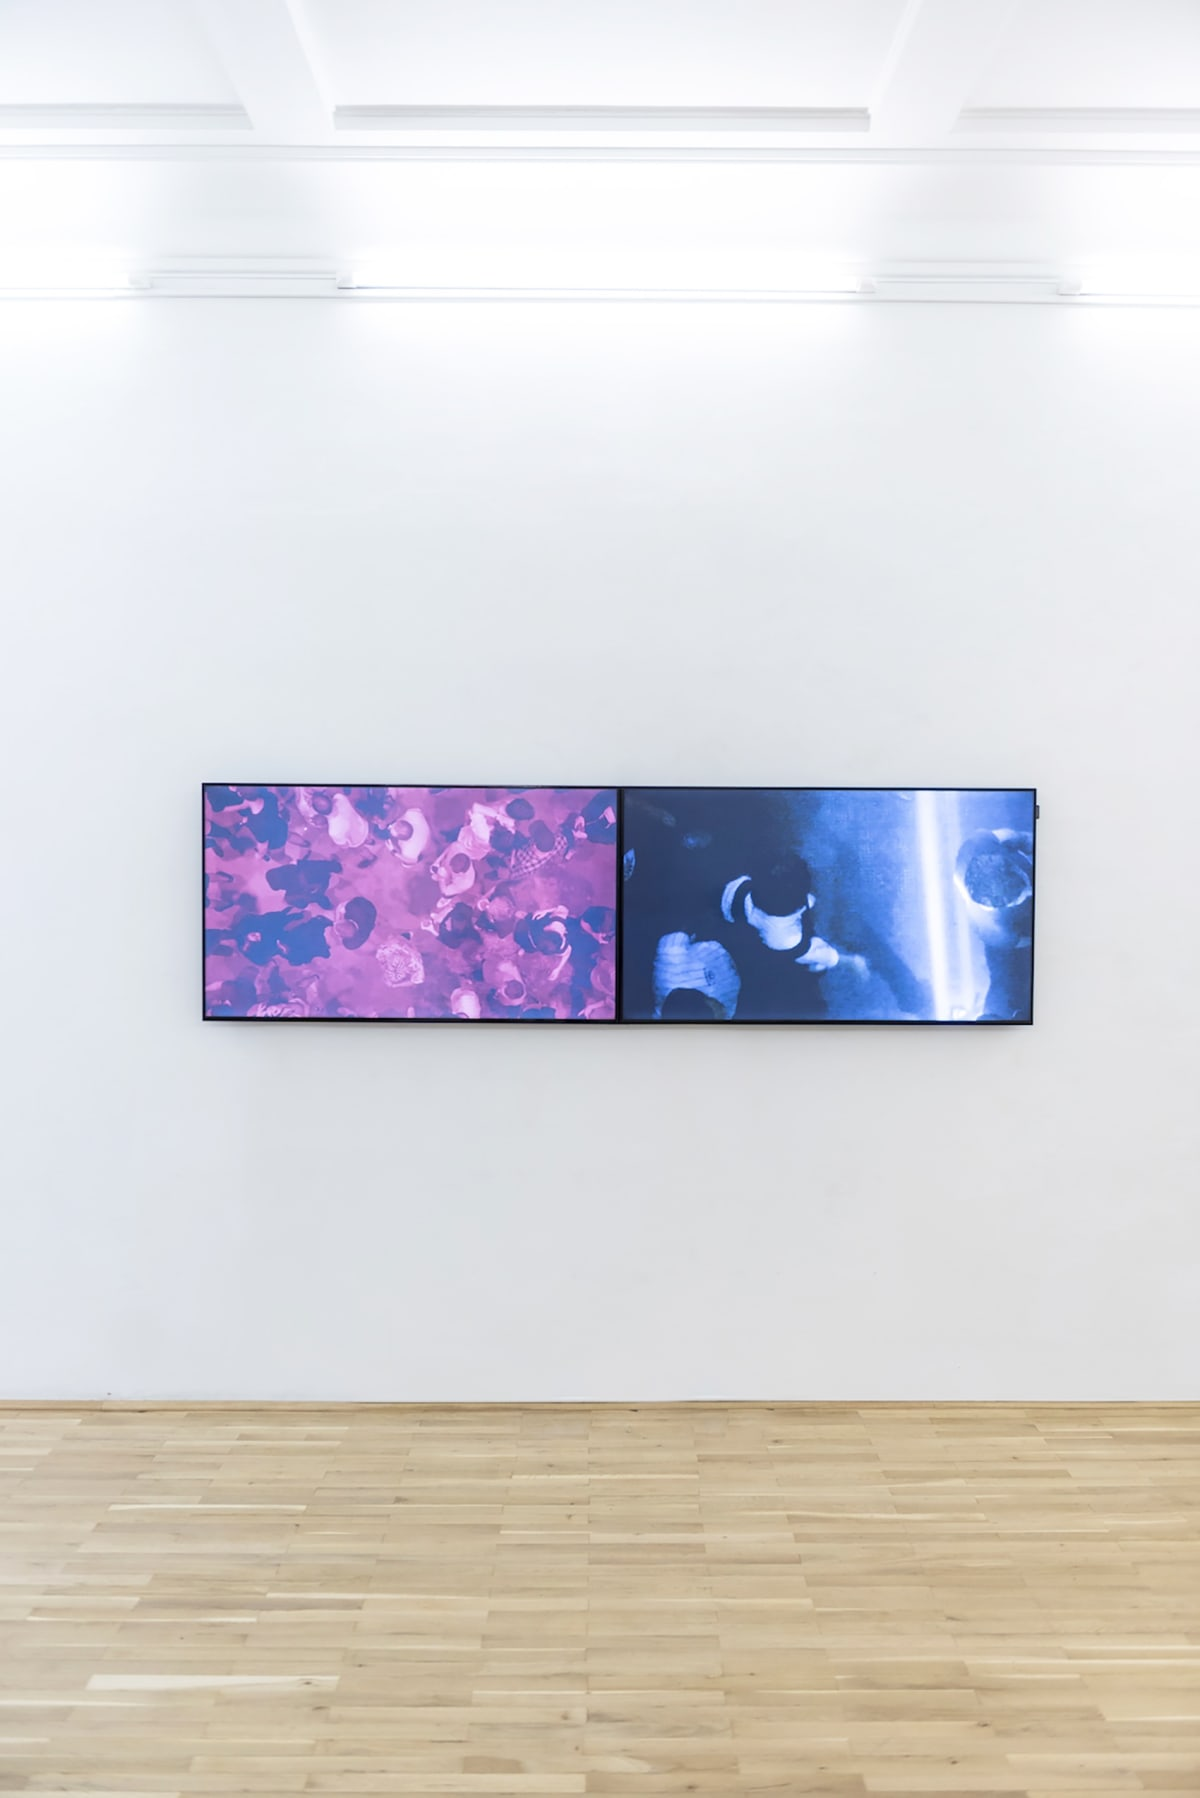 Video installation. A wide screen shows a film on the wall